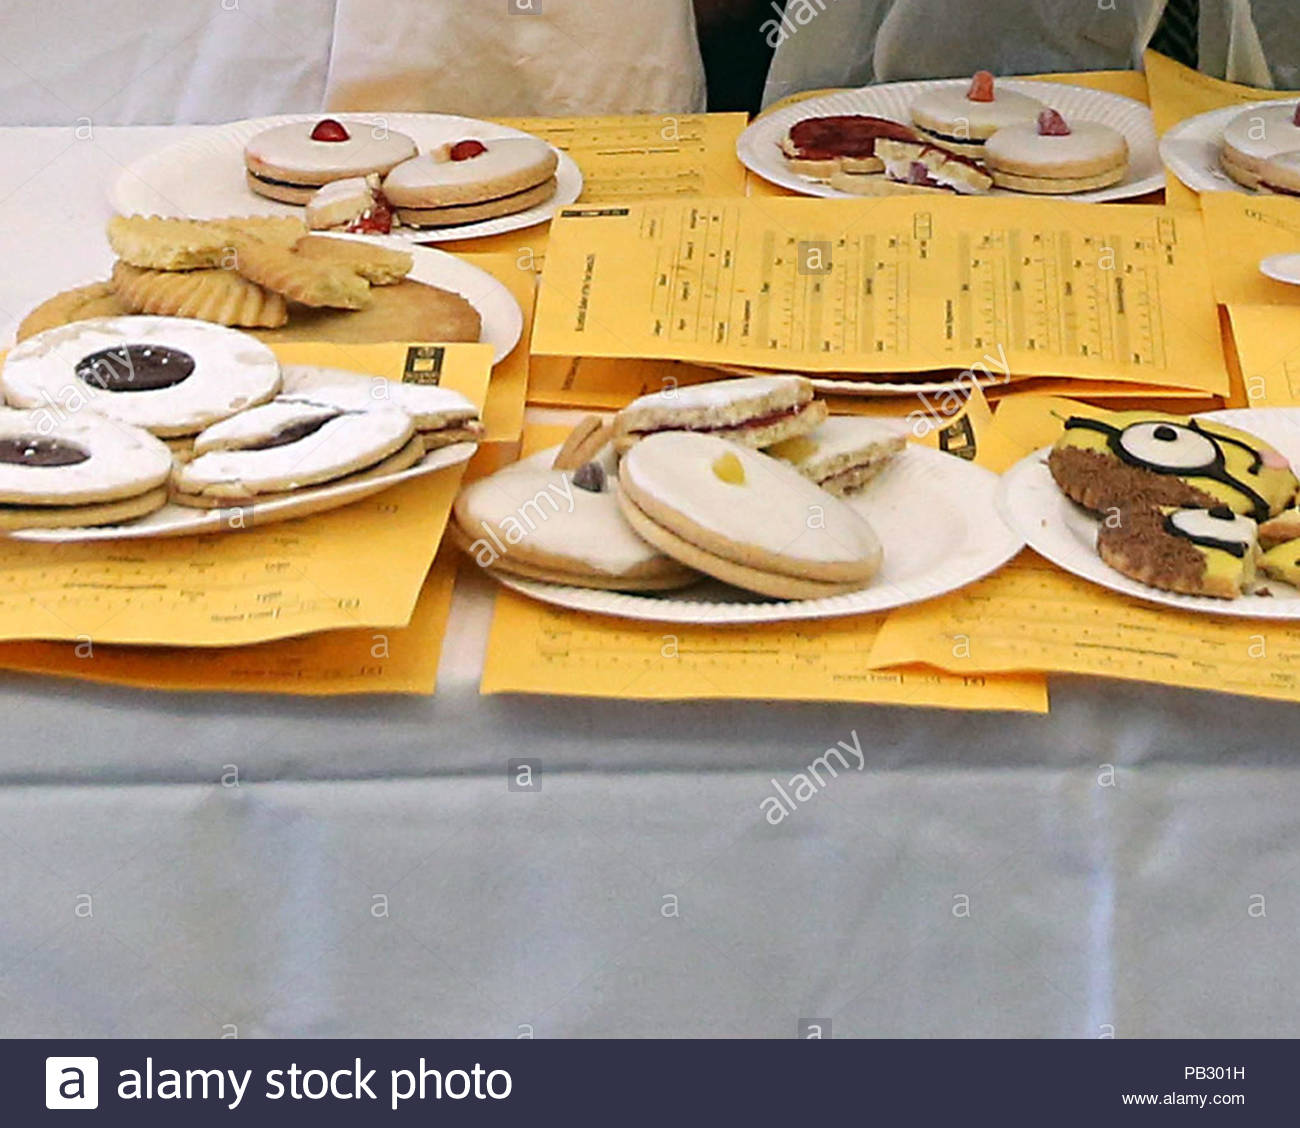 File Photo Dated 31/03/16 Of A Selection Of Cakes And Biscuits.